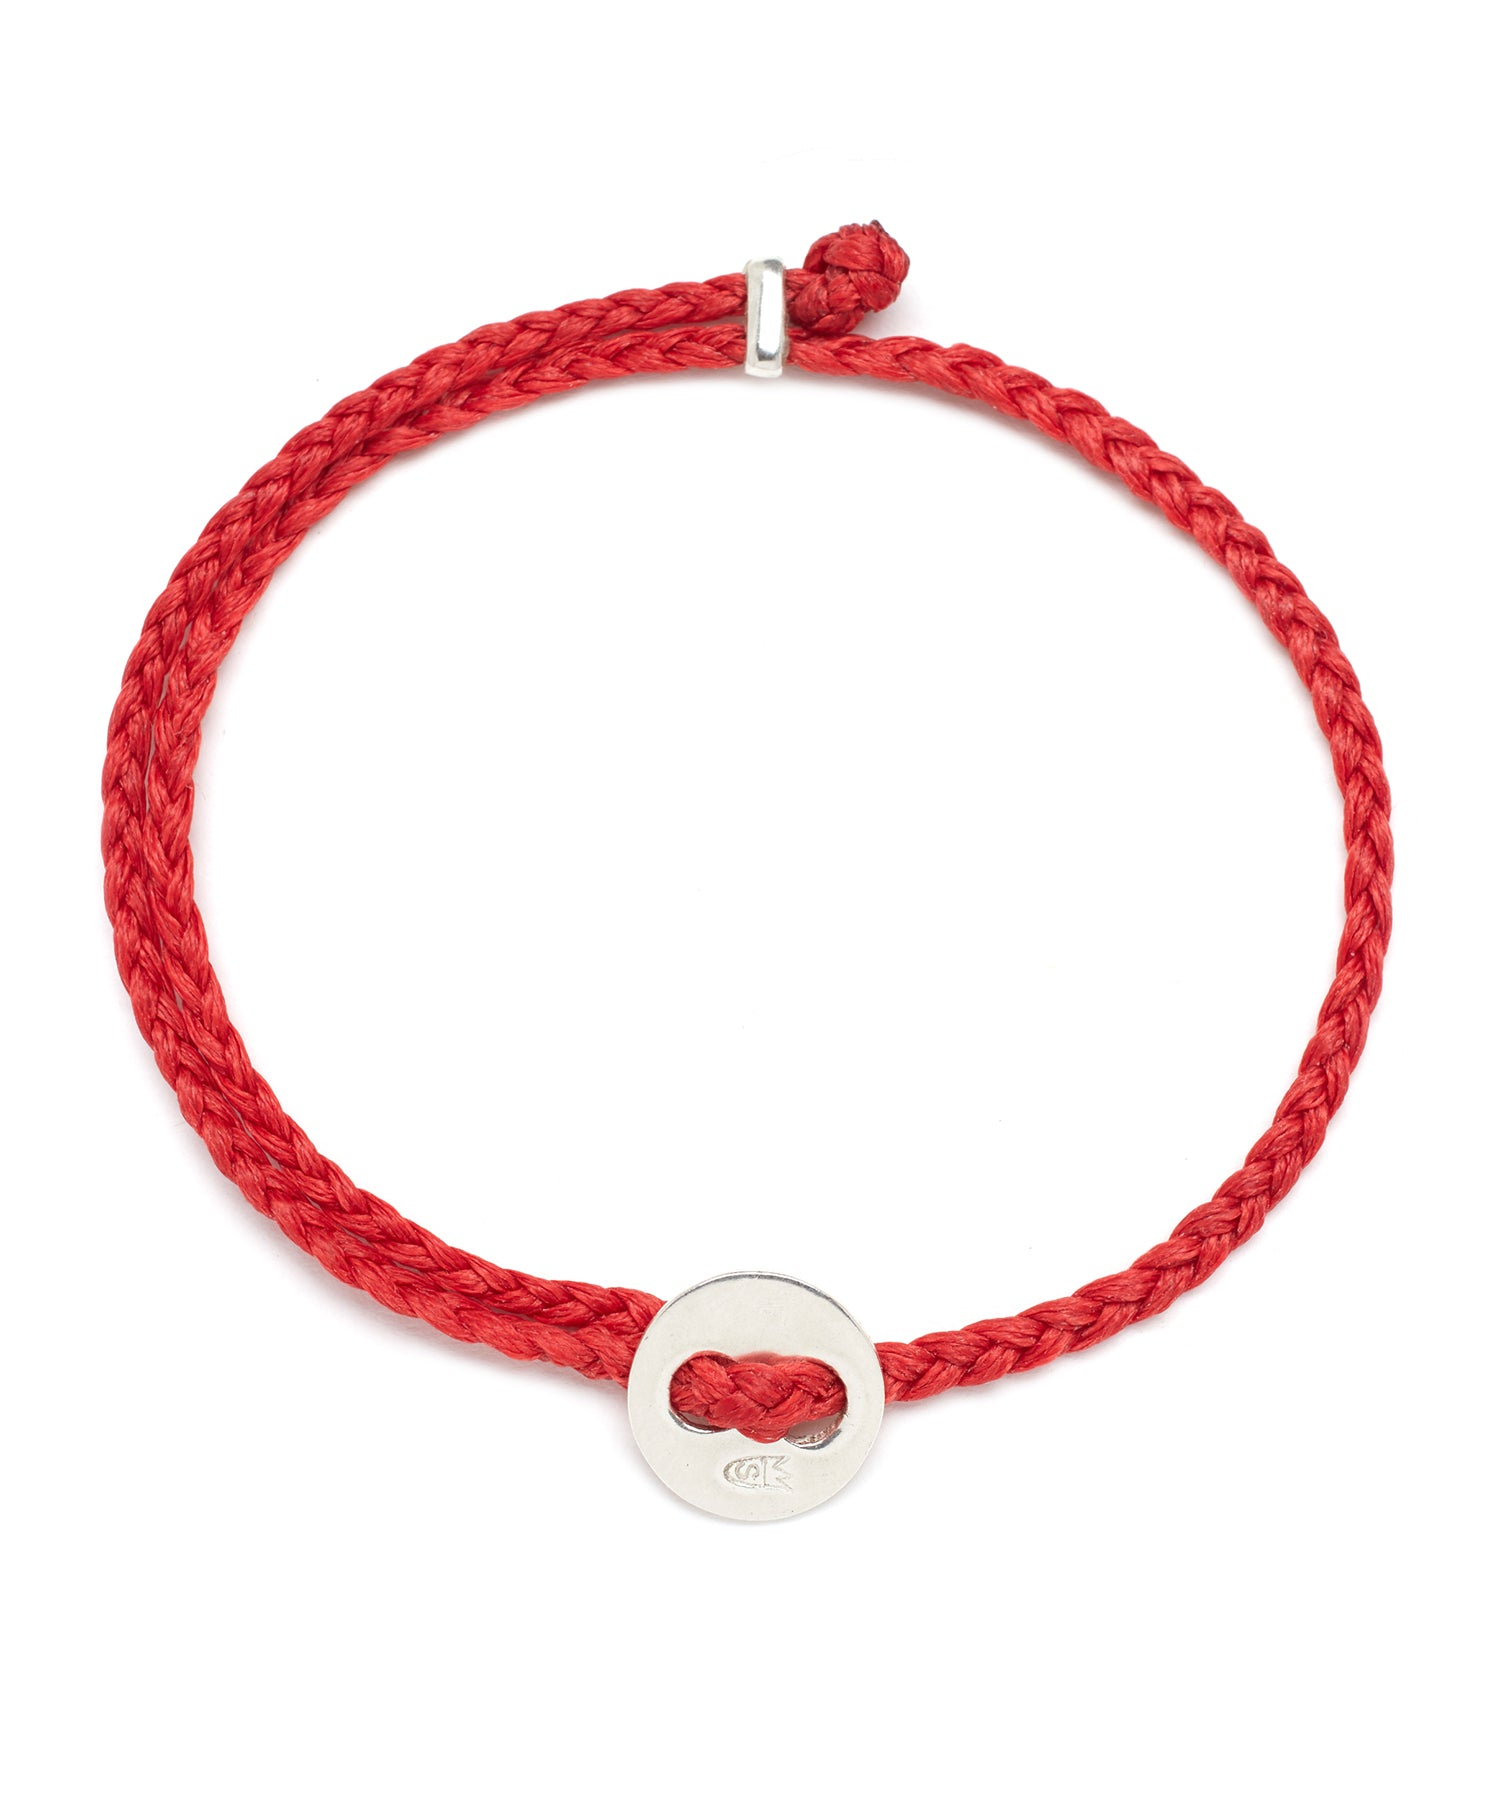 Scosha Signature 4MM Bracelet in Scarlet